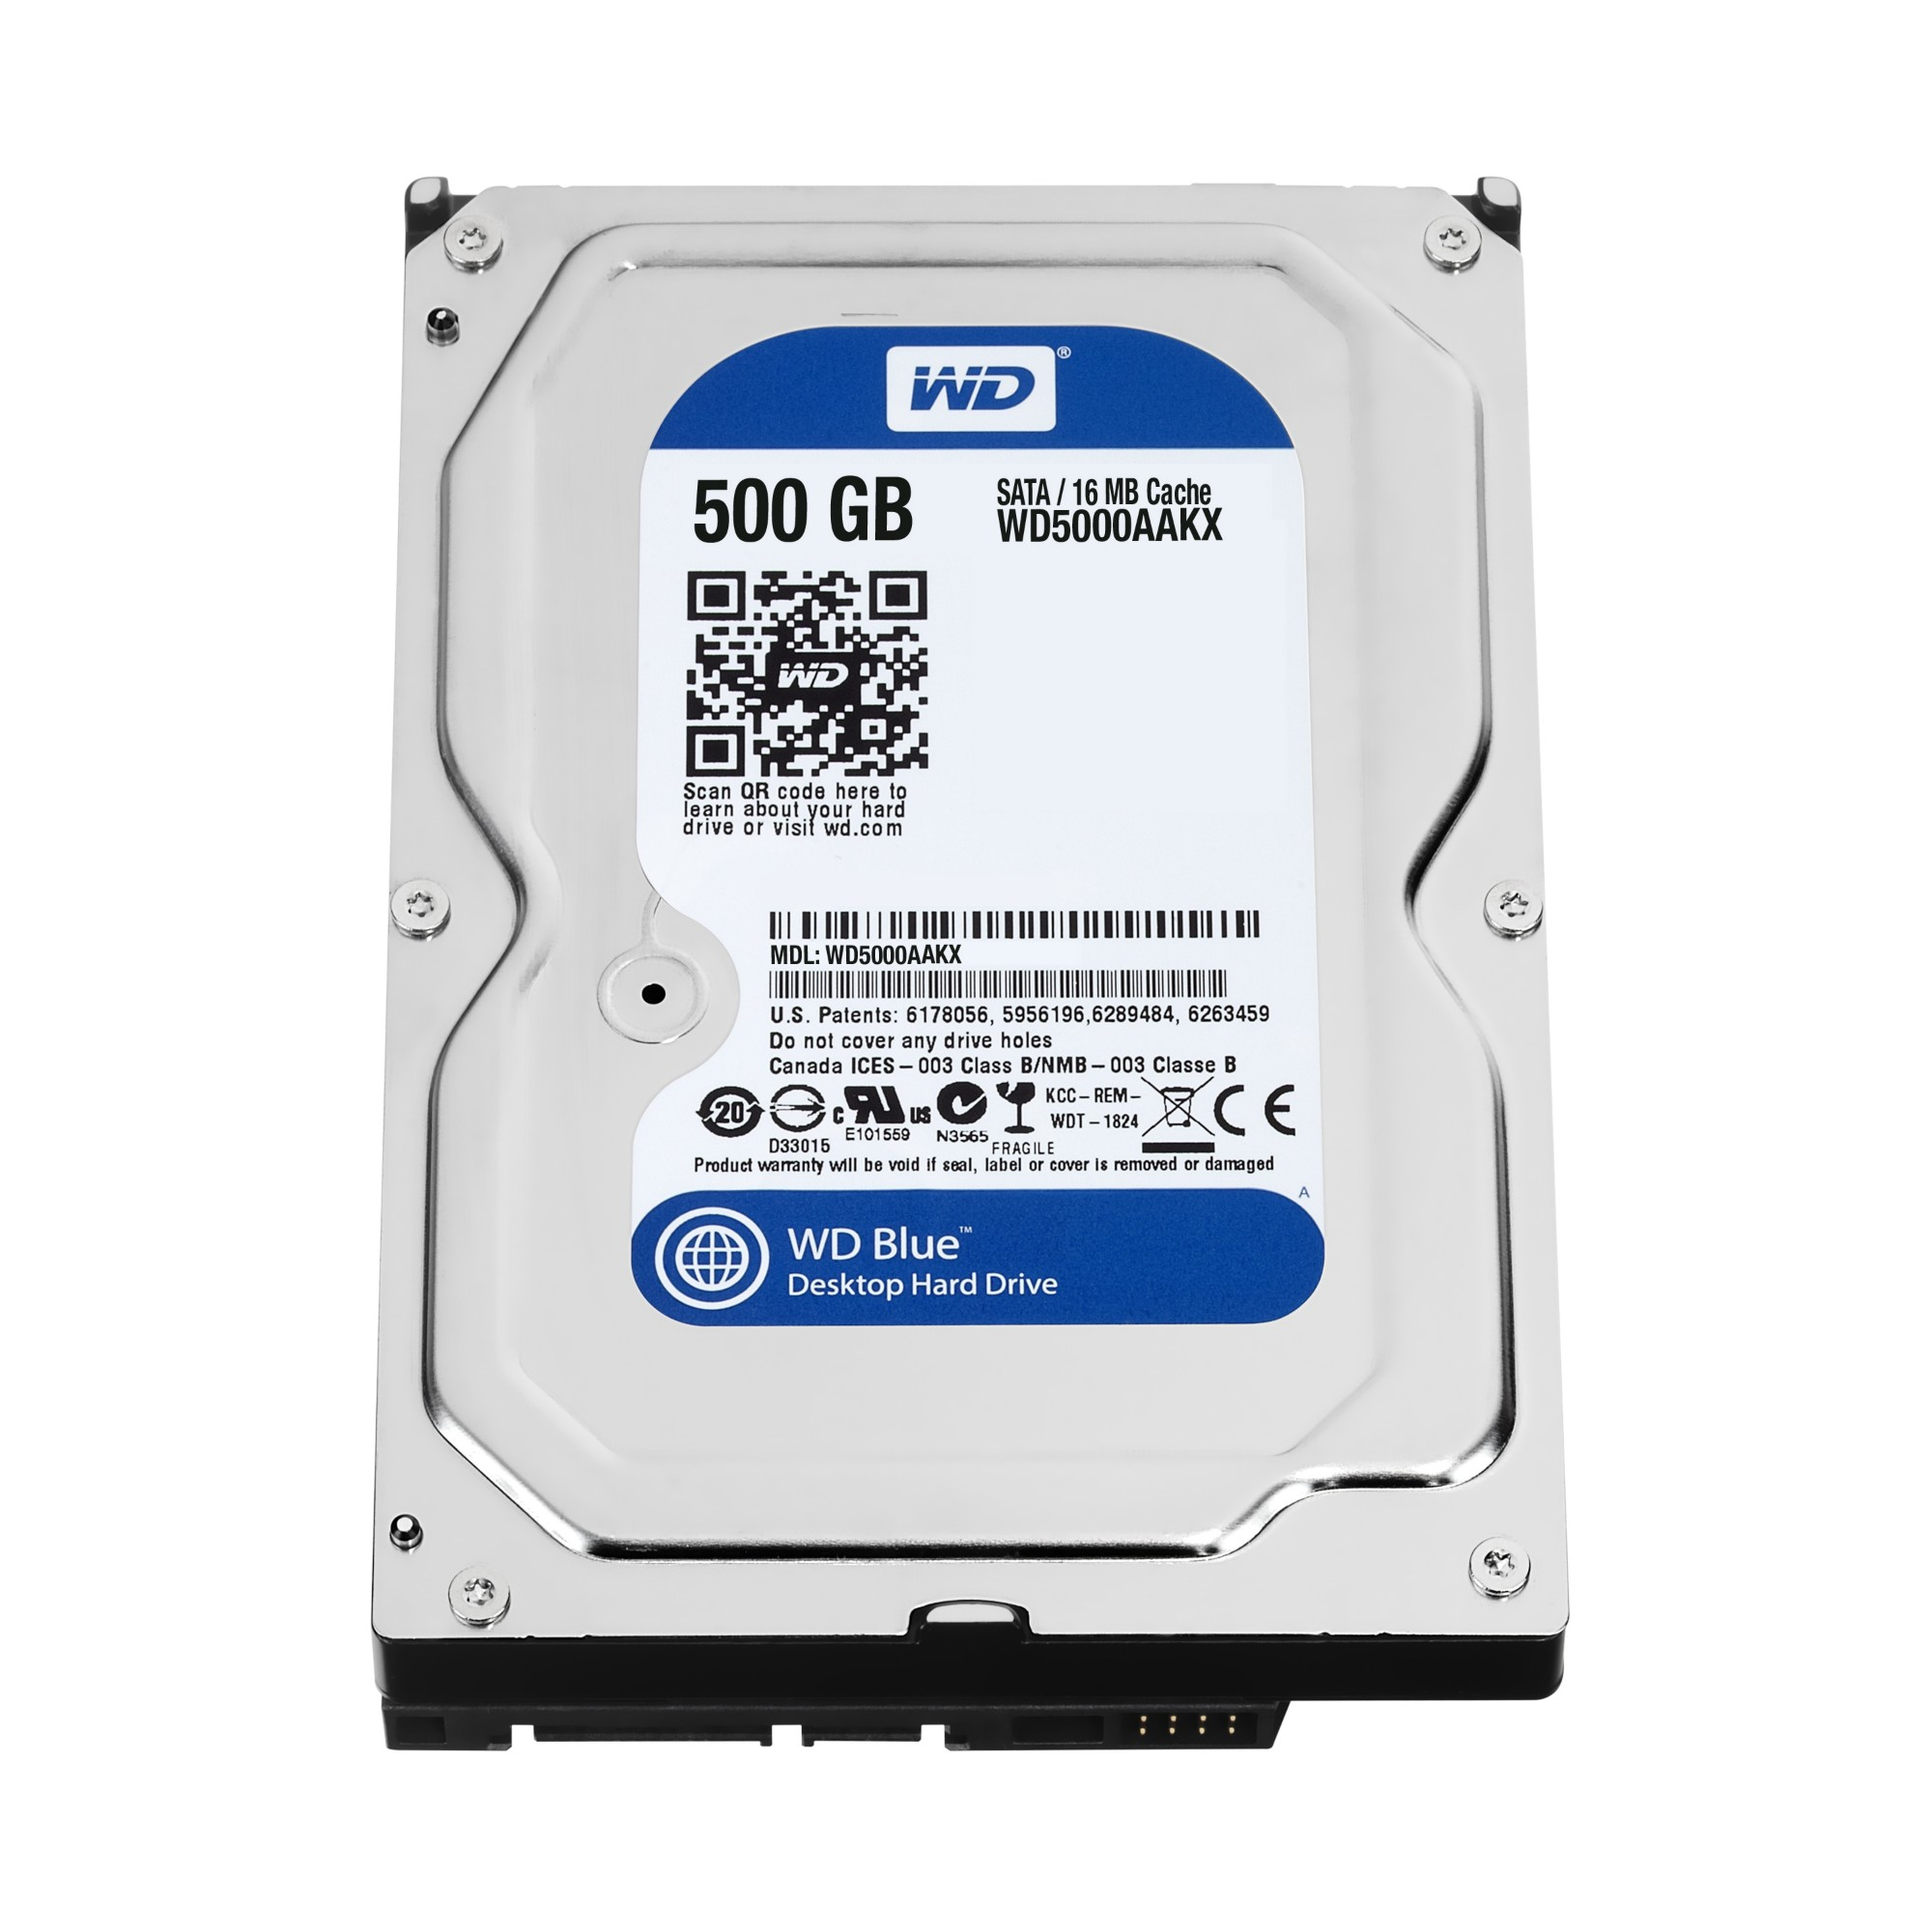 WESTERN DIGITAL BLUE 500GB SERIAL ATA INTERNAL HARD DRIVE REFURBISHED